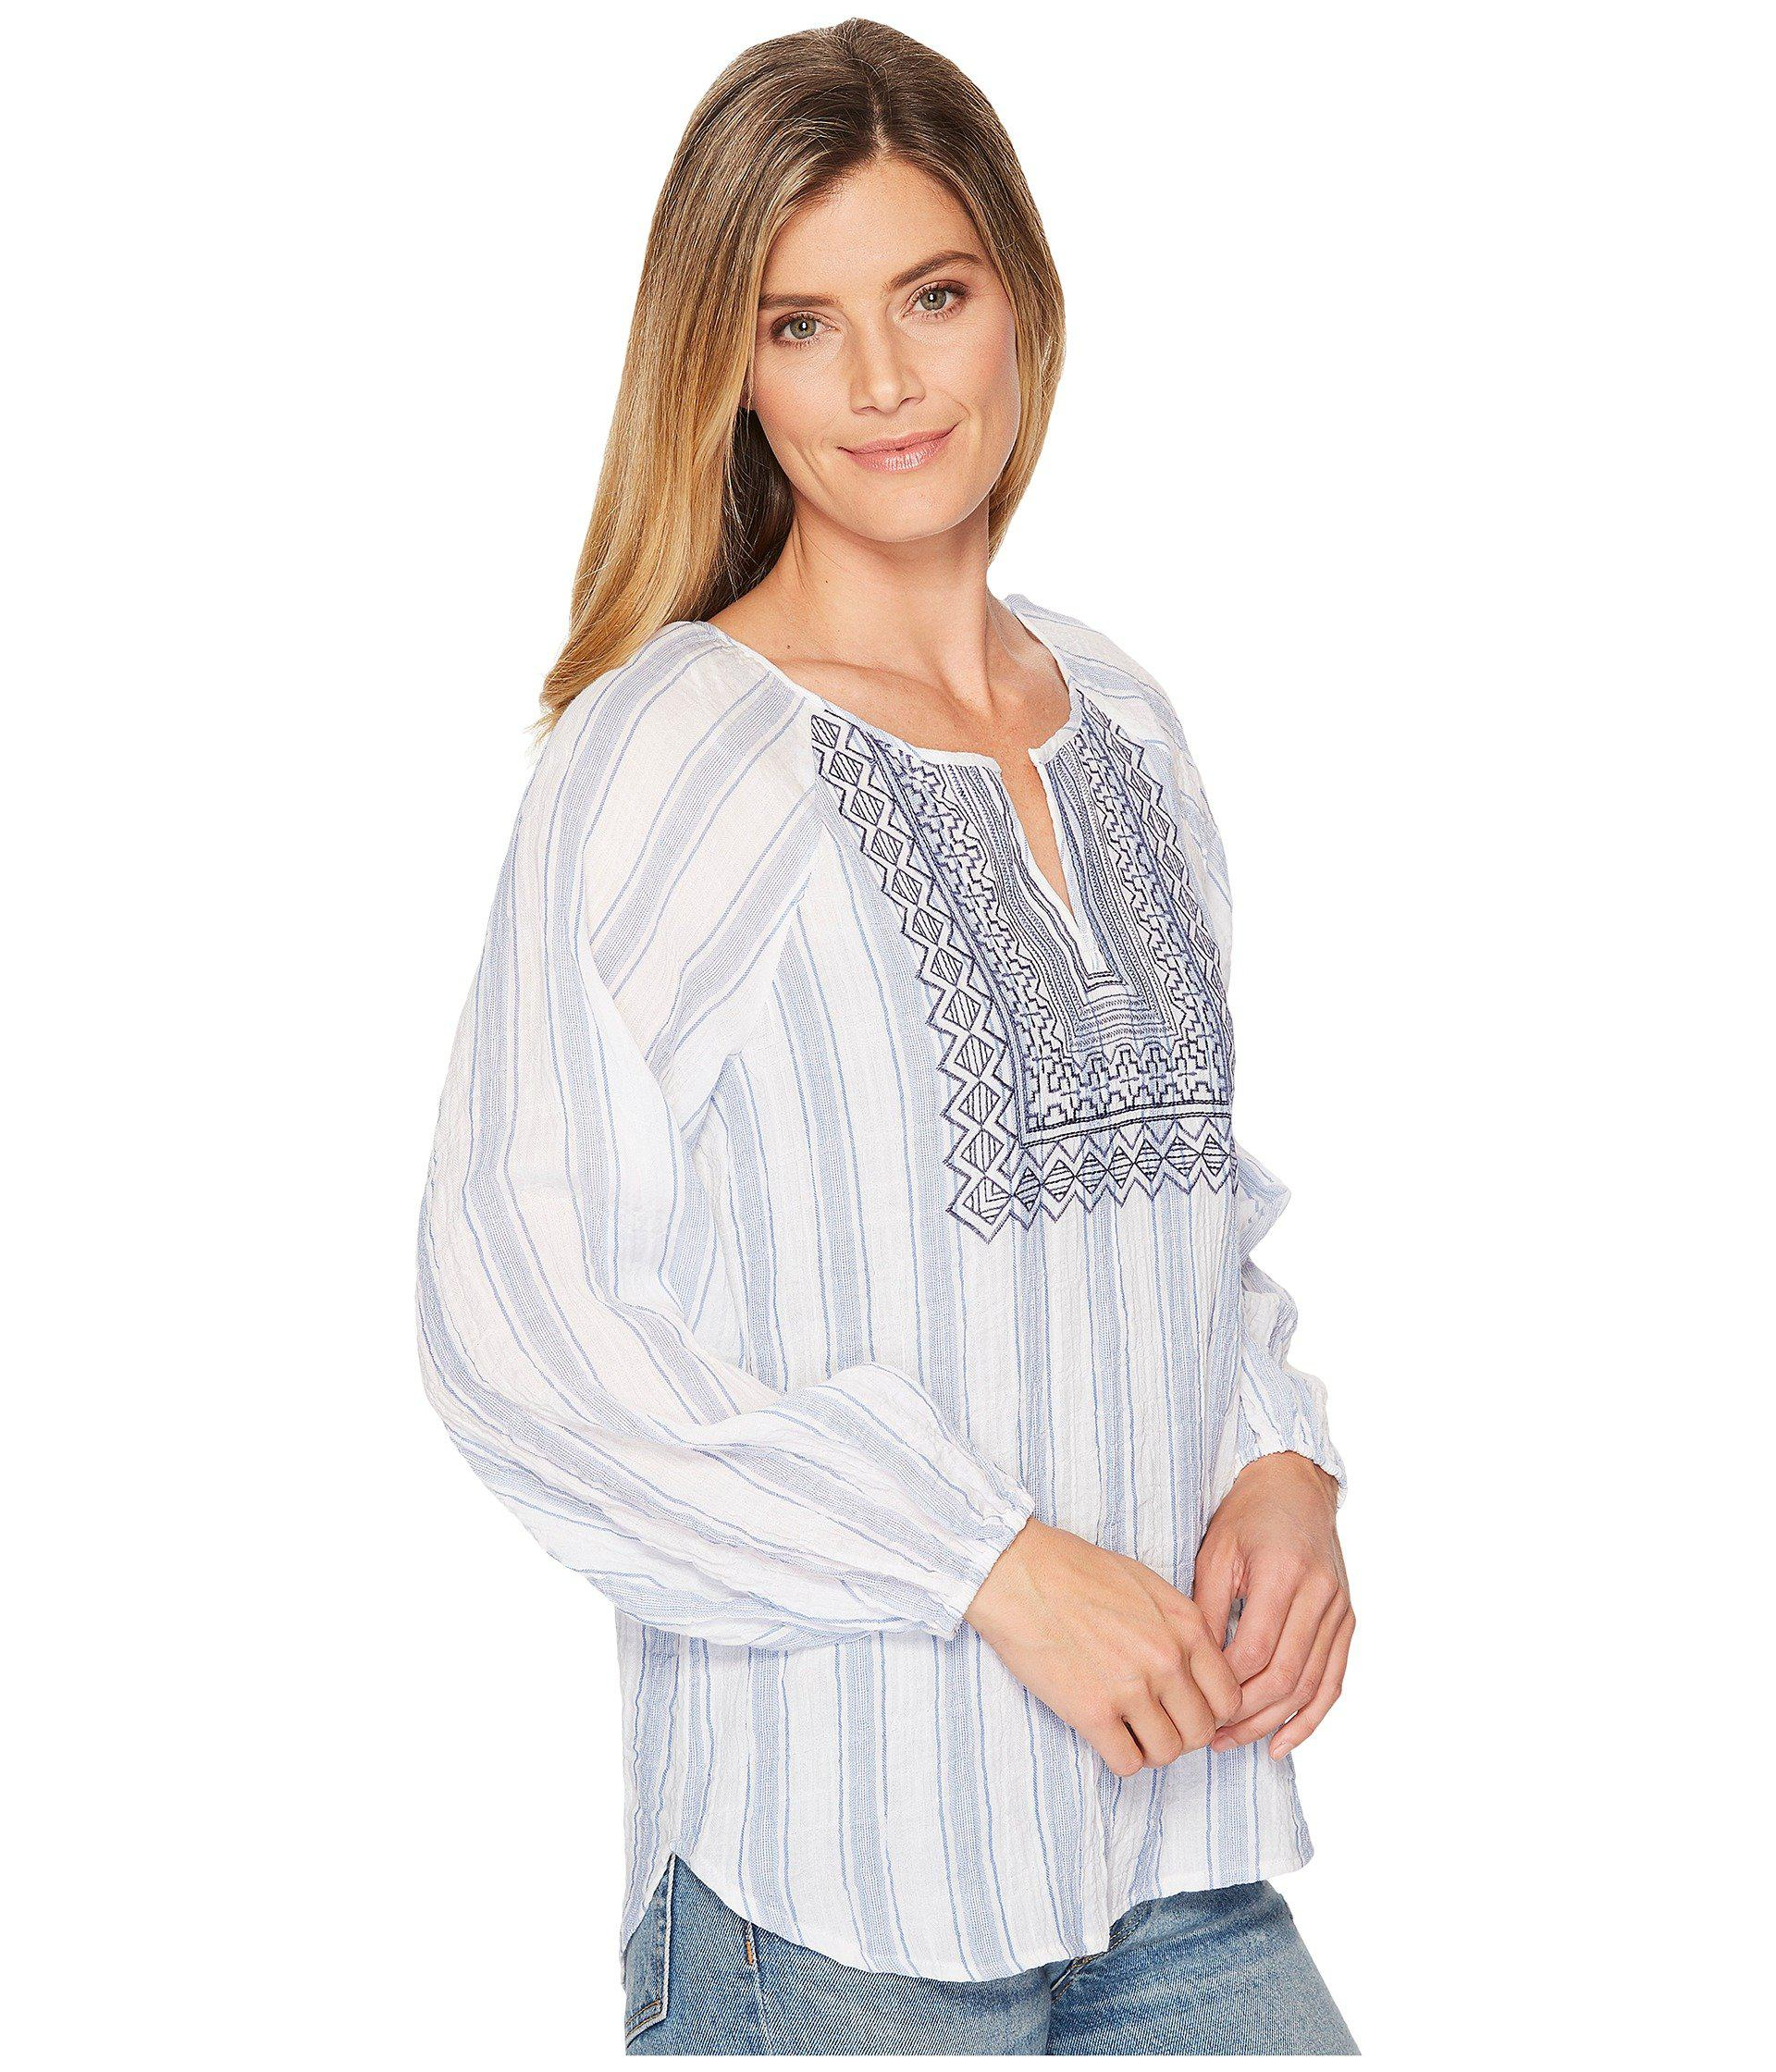 b2b55cc5b04 Two By Vince Camuto - Blue Long Sleeve Stripe Pucker Peasant Blouse With  Embroidered Bib -. View fullscreen